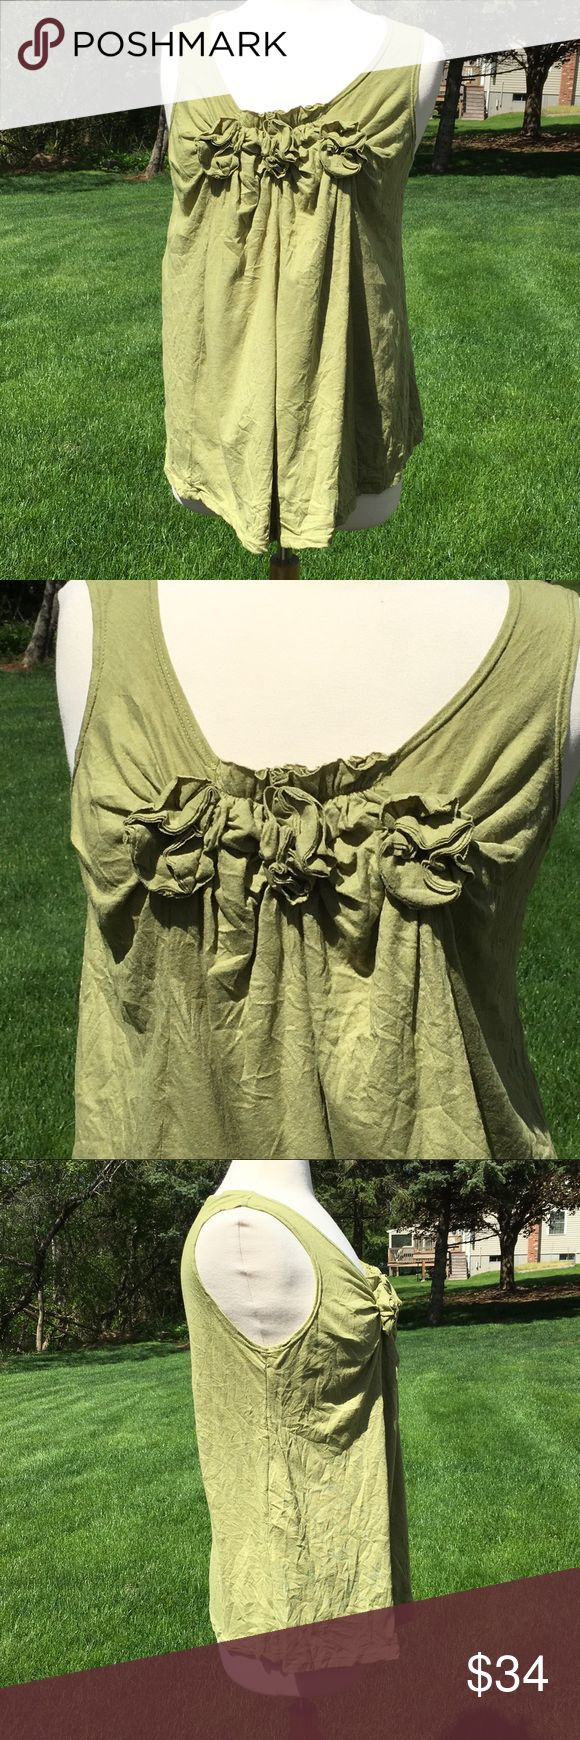 Chalet Crinkle Tank Top Taupe colored, Soft, lightweight, crinkled design with 3 rosette details along front neckline. Loose fitting, flowy at the bottom. Care tag has been removed. Excellent condition, worn once. 38% cotton, 50% polyester, 12% rayon. Chalet (Boutique Brand) Tops Tank Tops